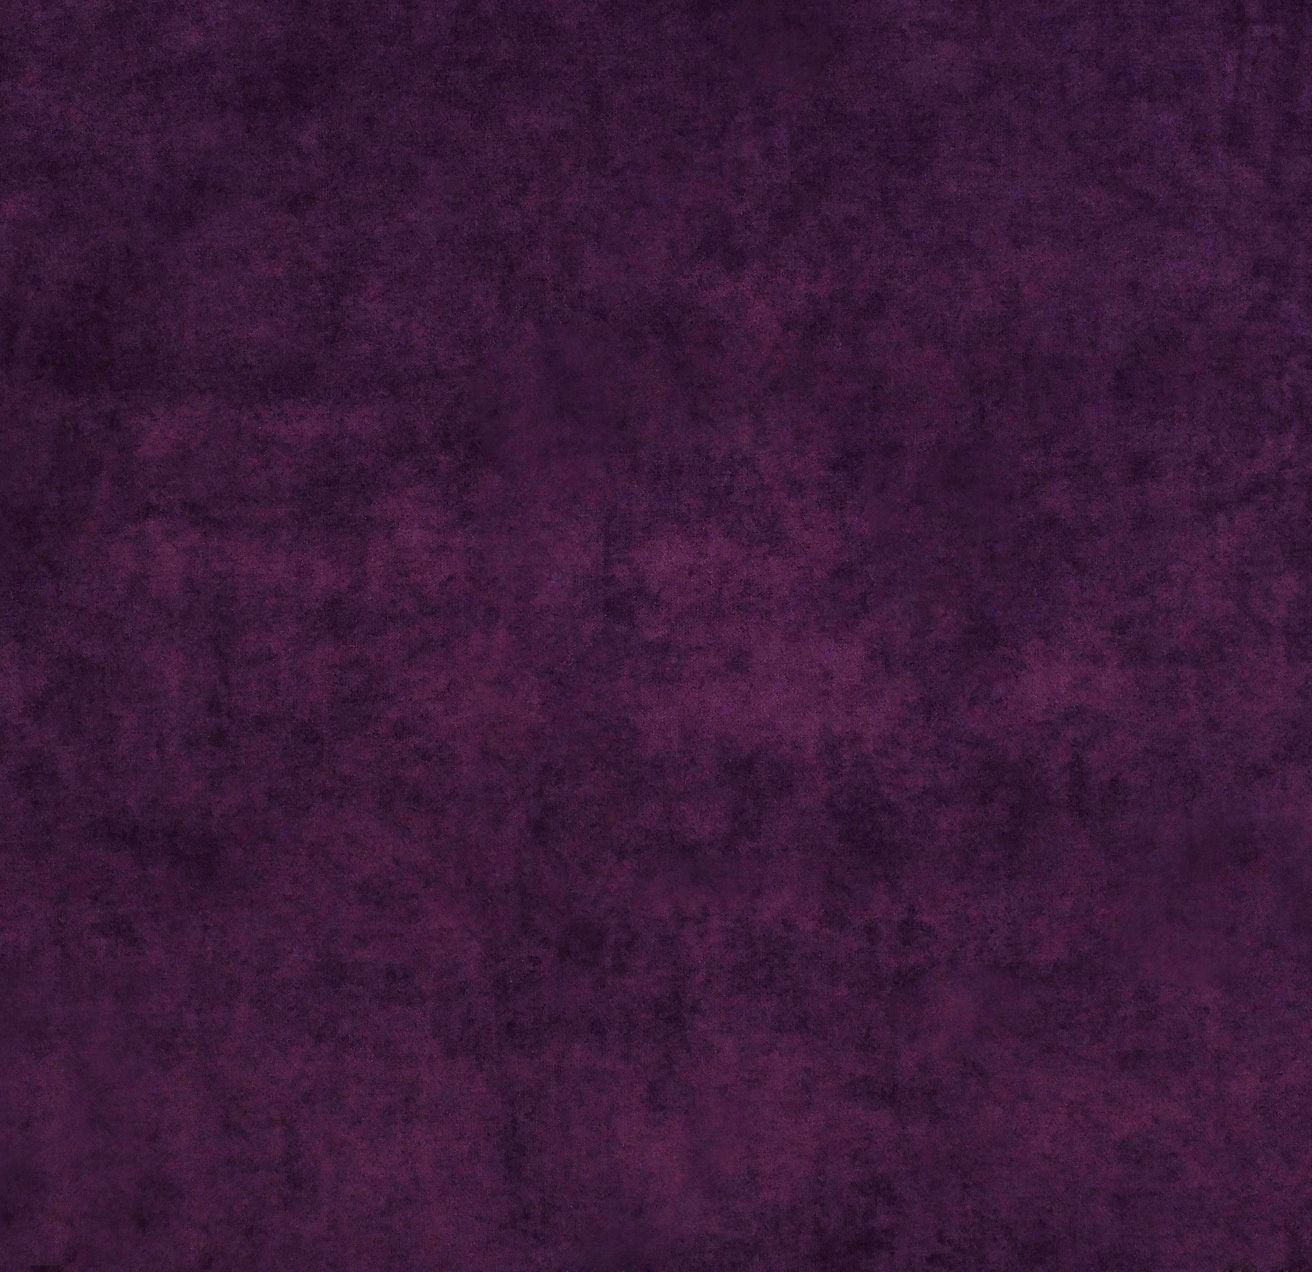 purple upholstery fabric and - photo #5